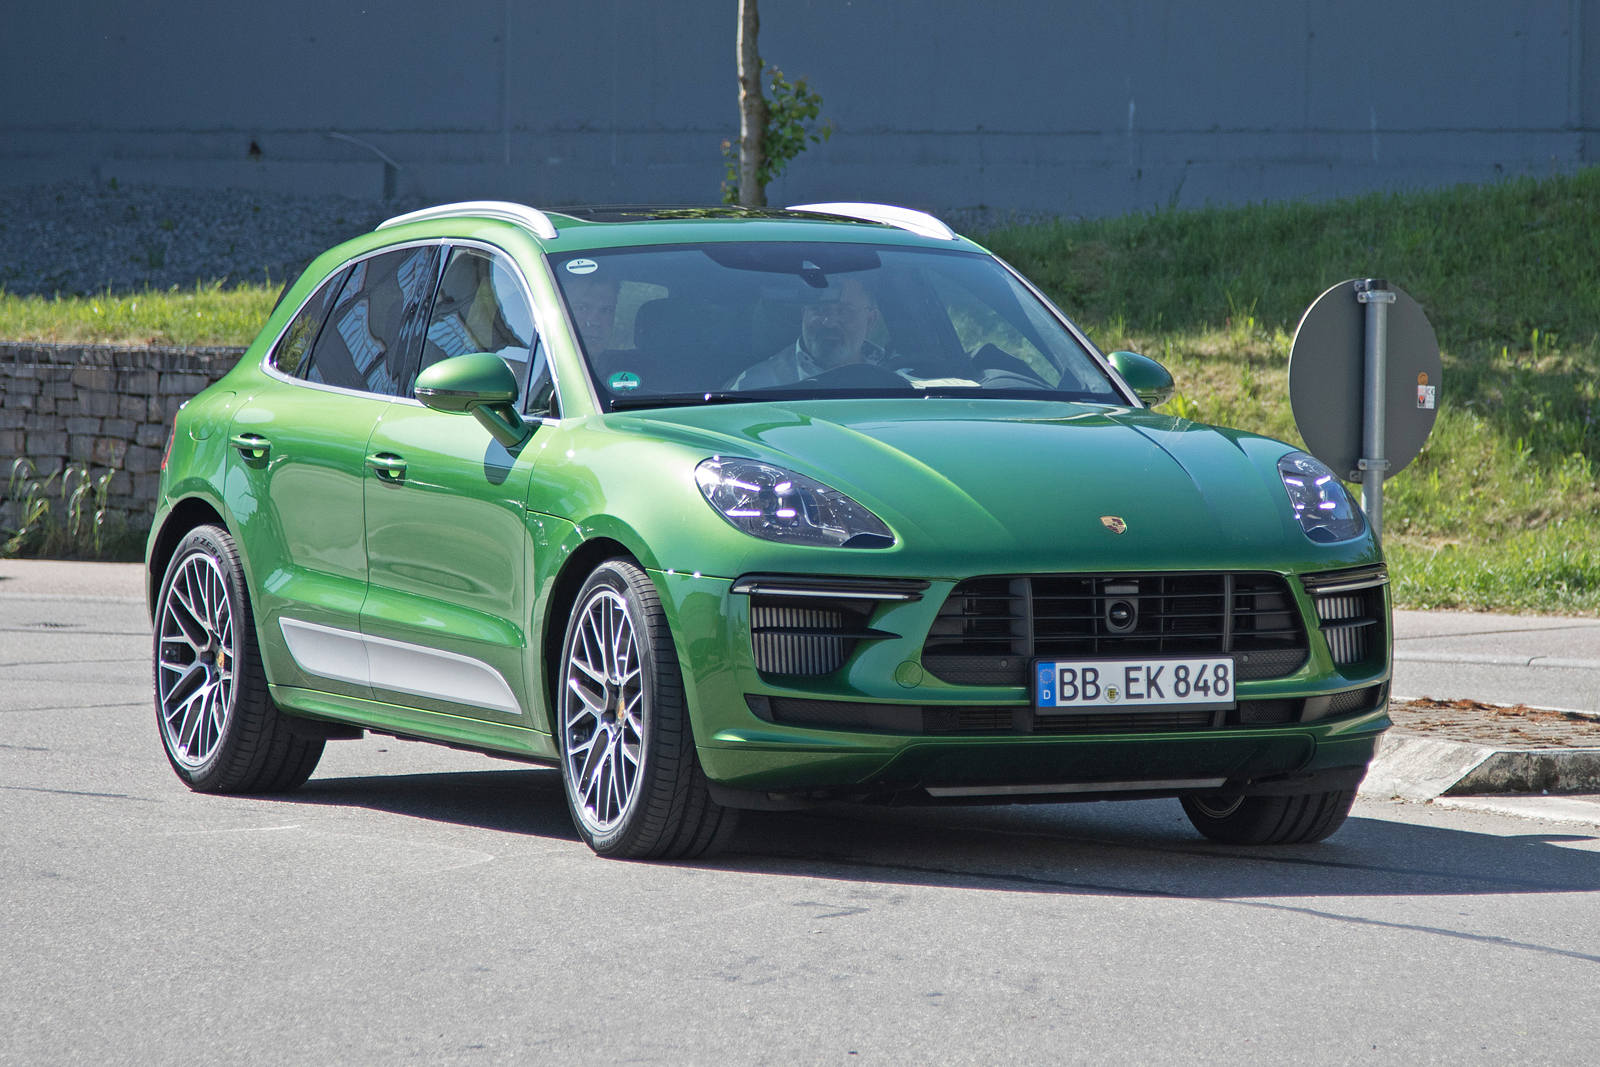 Headlights For Cars >> Porsche Macan Getting Updated Looks for 2019 » AutoGuide.com News